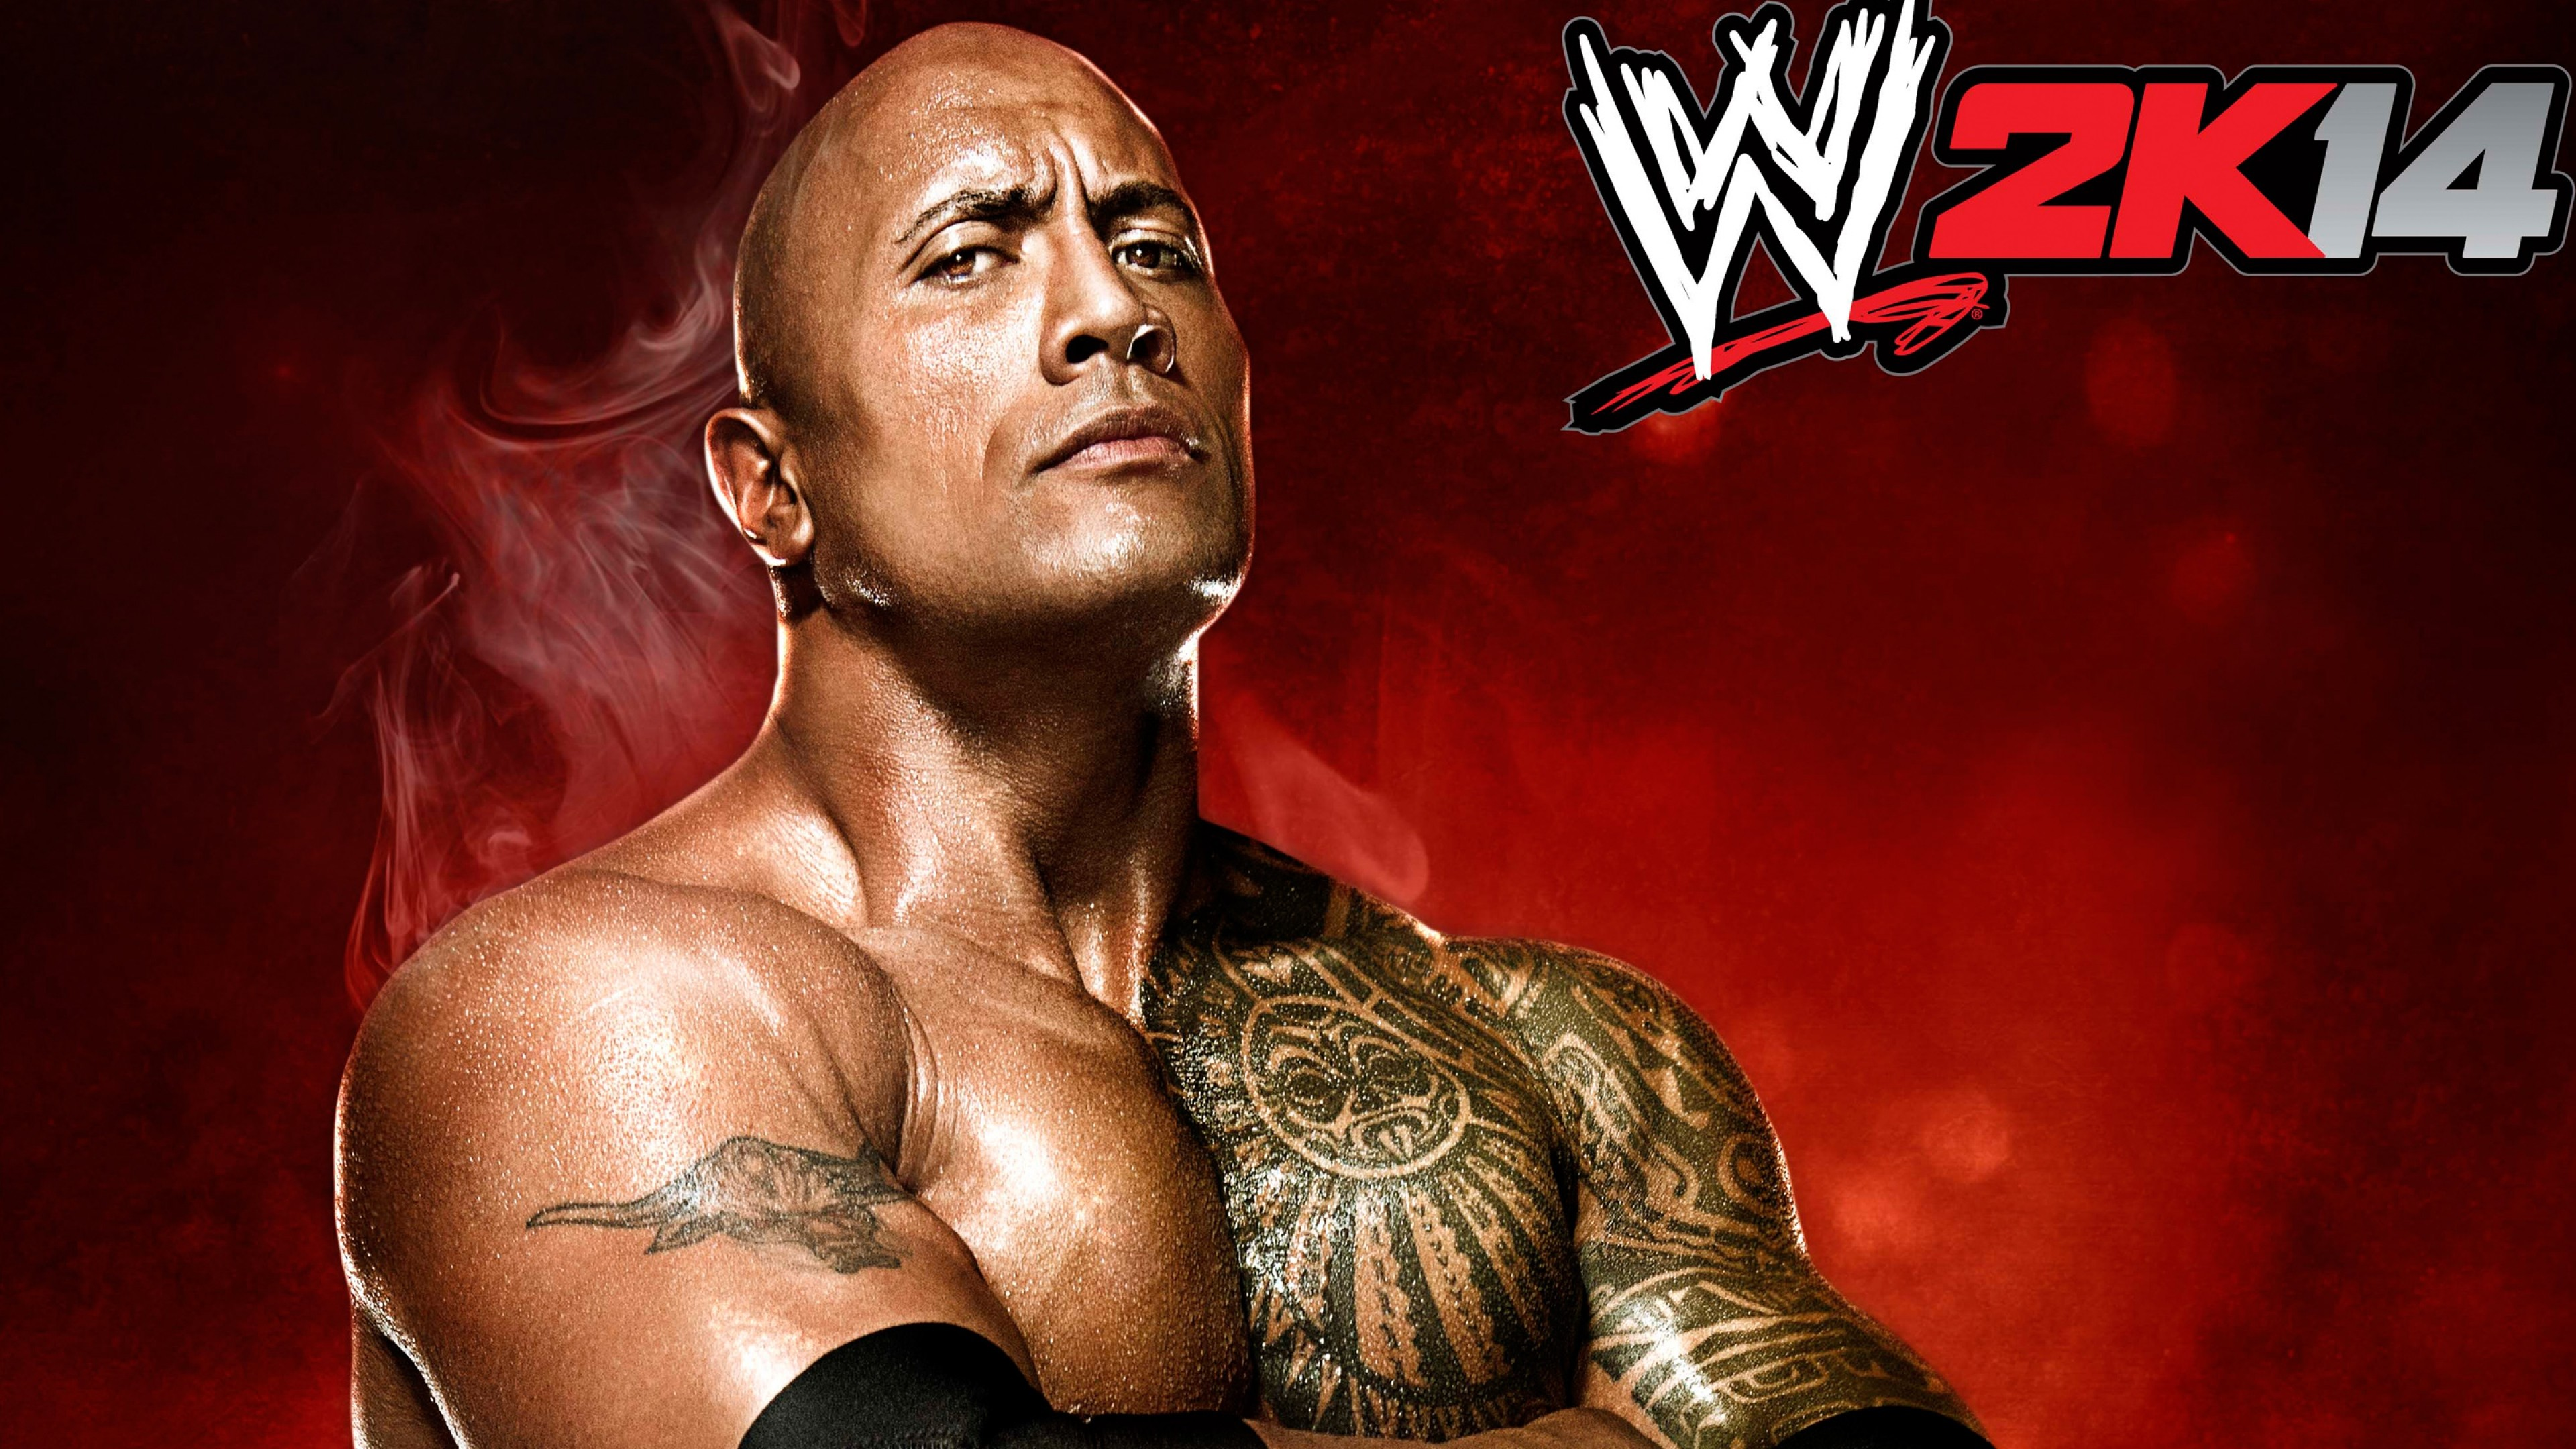 3840x2160 Preview wallpaper wwe, world wrestling entertainment, inc, american  company, wrestling